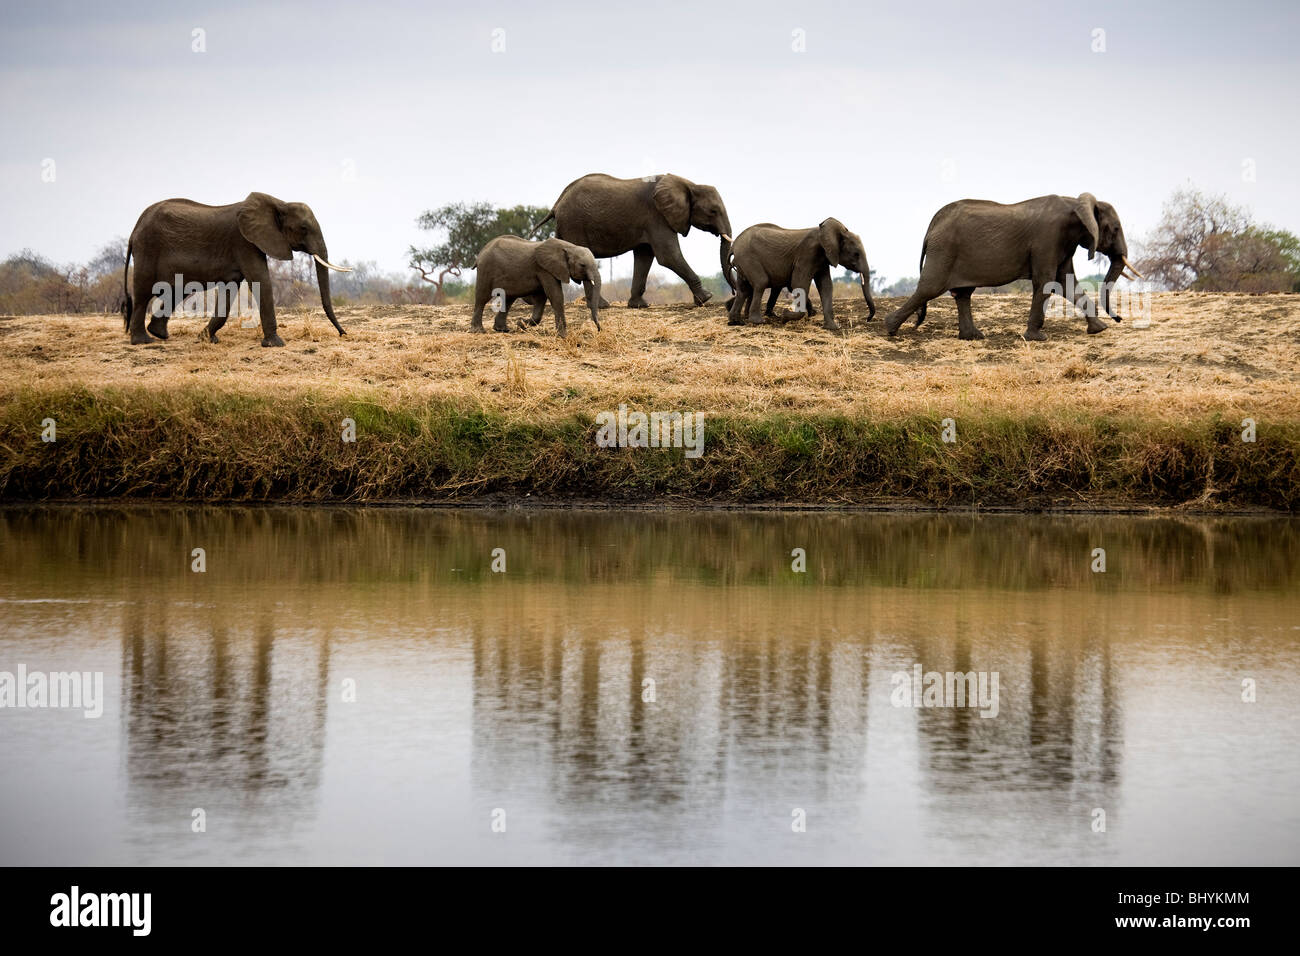 Family of elephants, Mikumi NP, Tanzania, East Africa - Stock Image